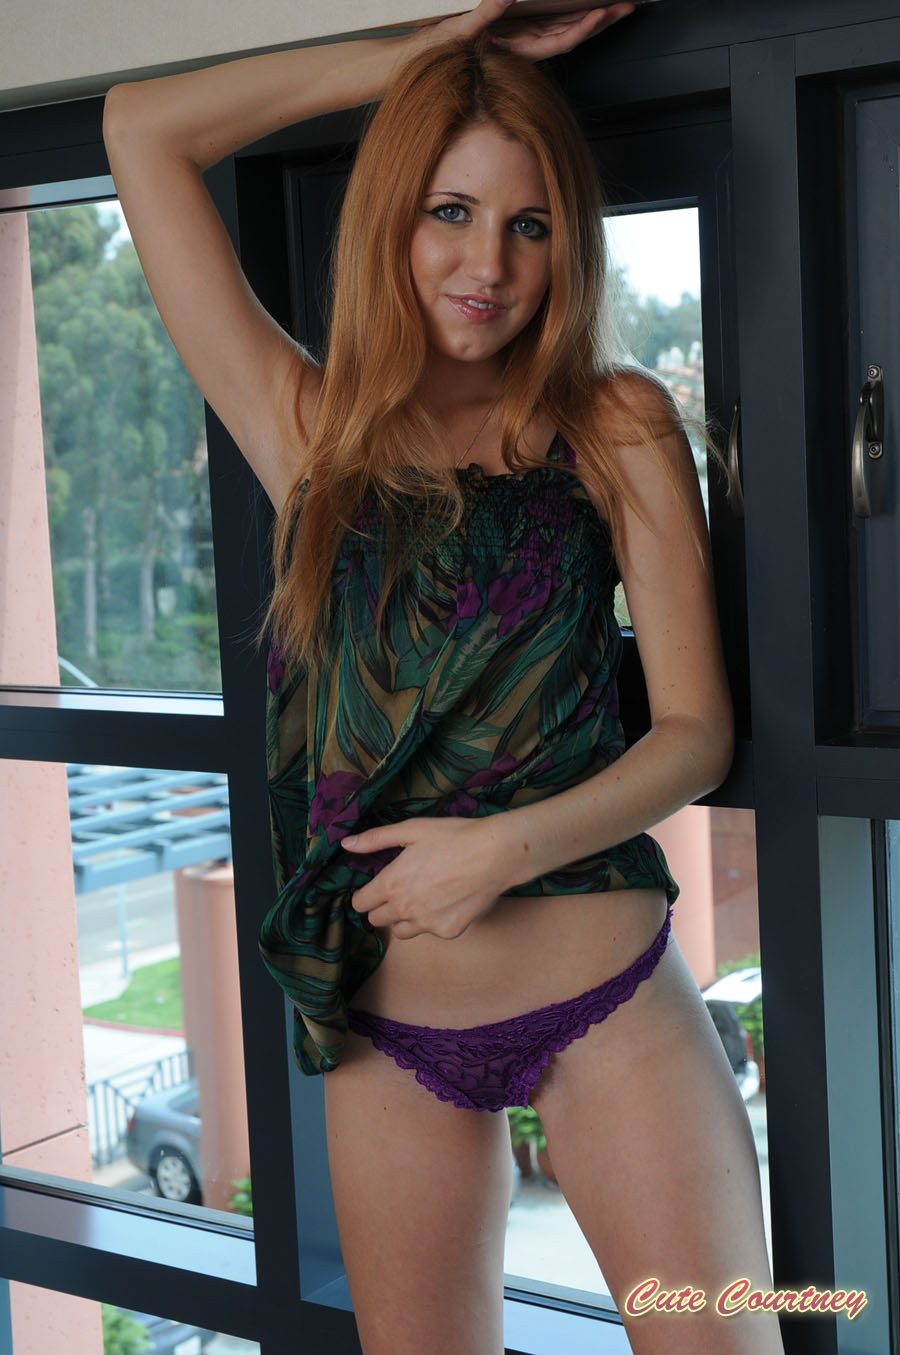 Cute Courtney - Sexy Redhead Teasing at AmateurIndex.com